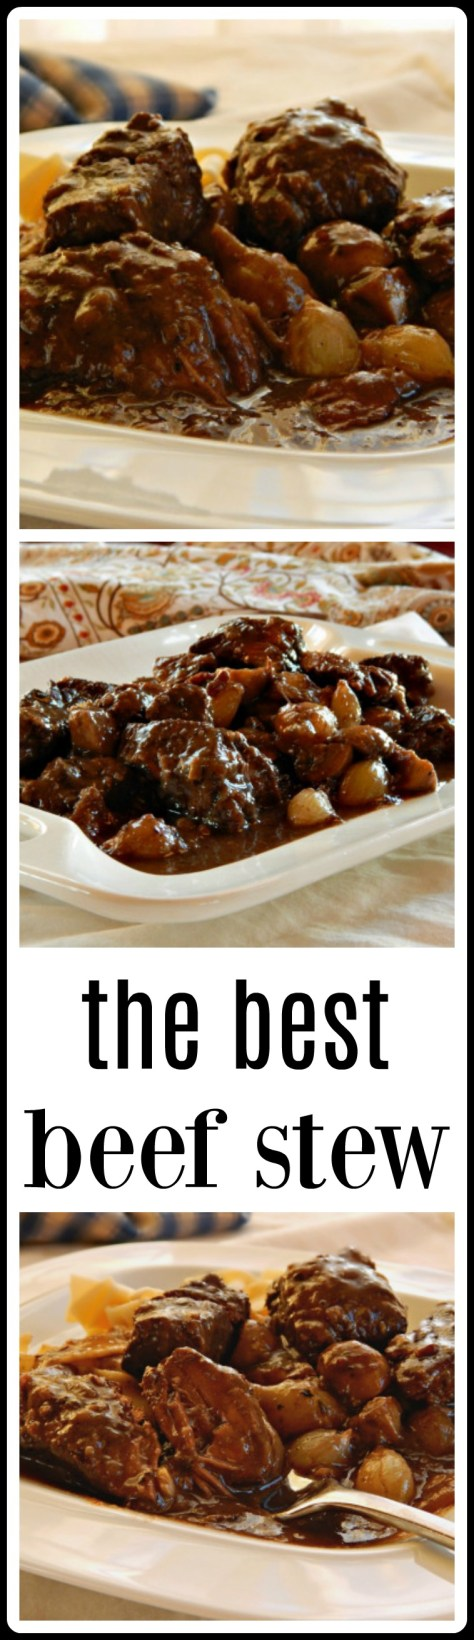 this really is the BEST stew - adapted from Cook's Illustrated, make it with wine or use substitutions